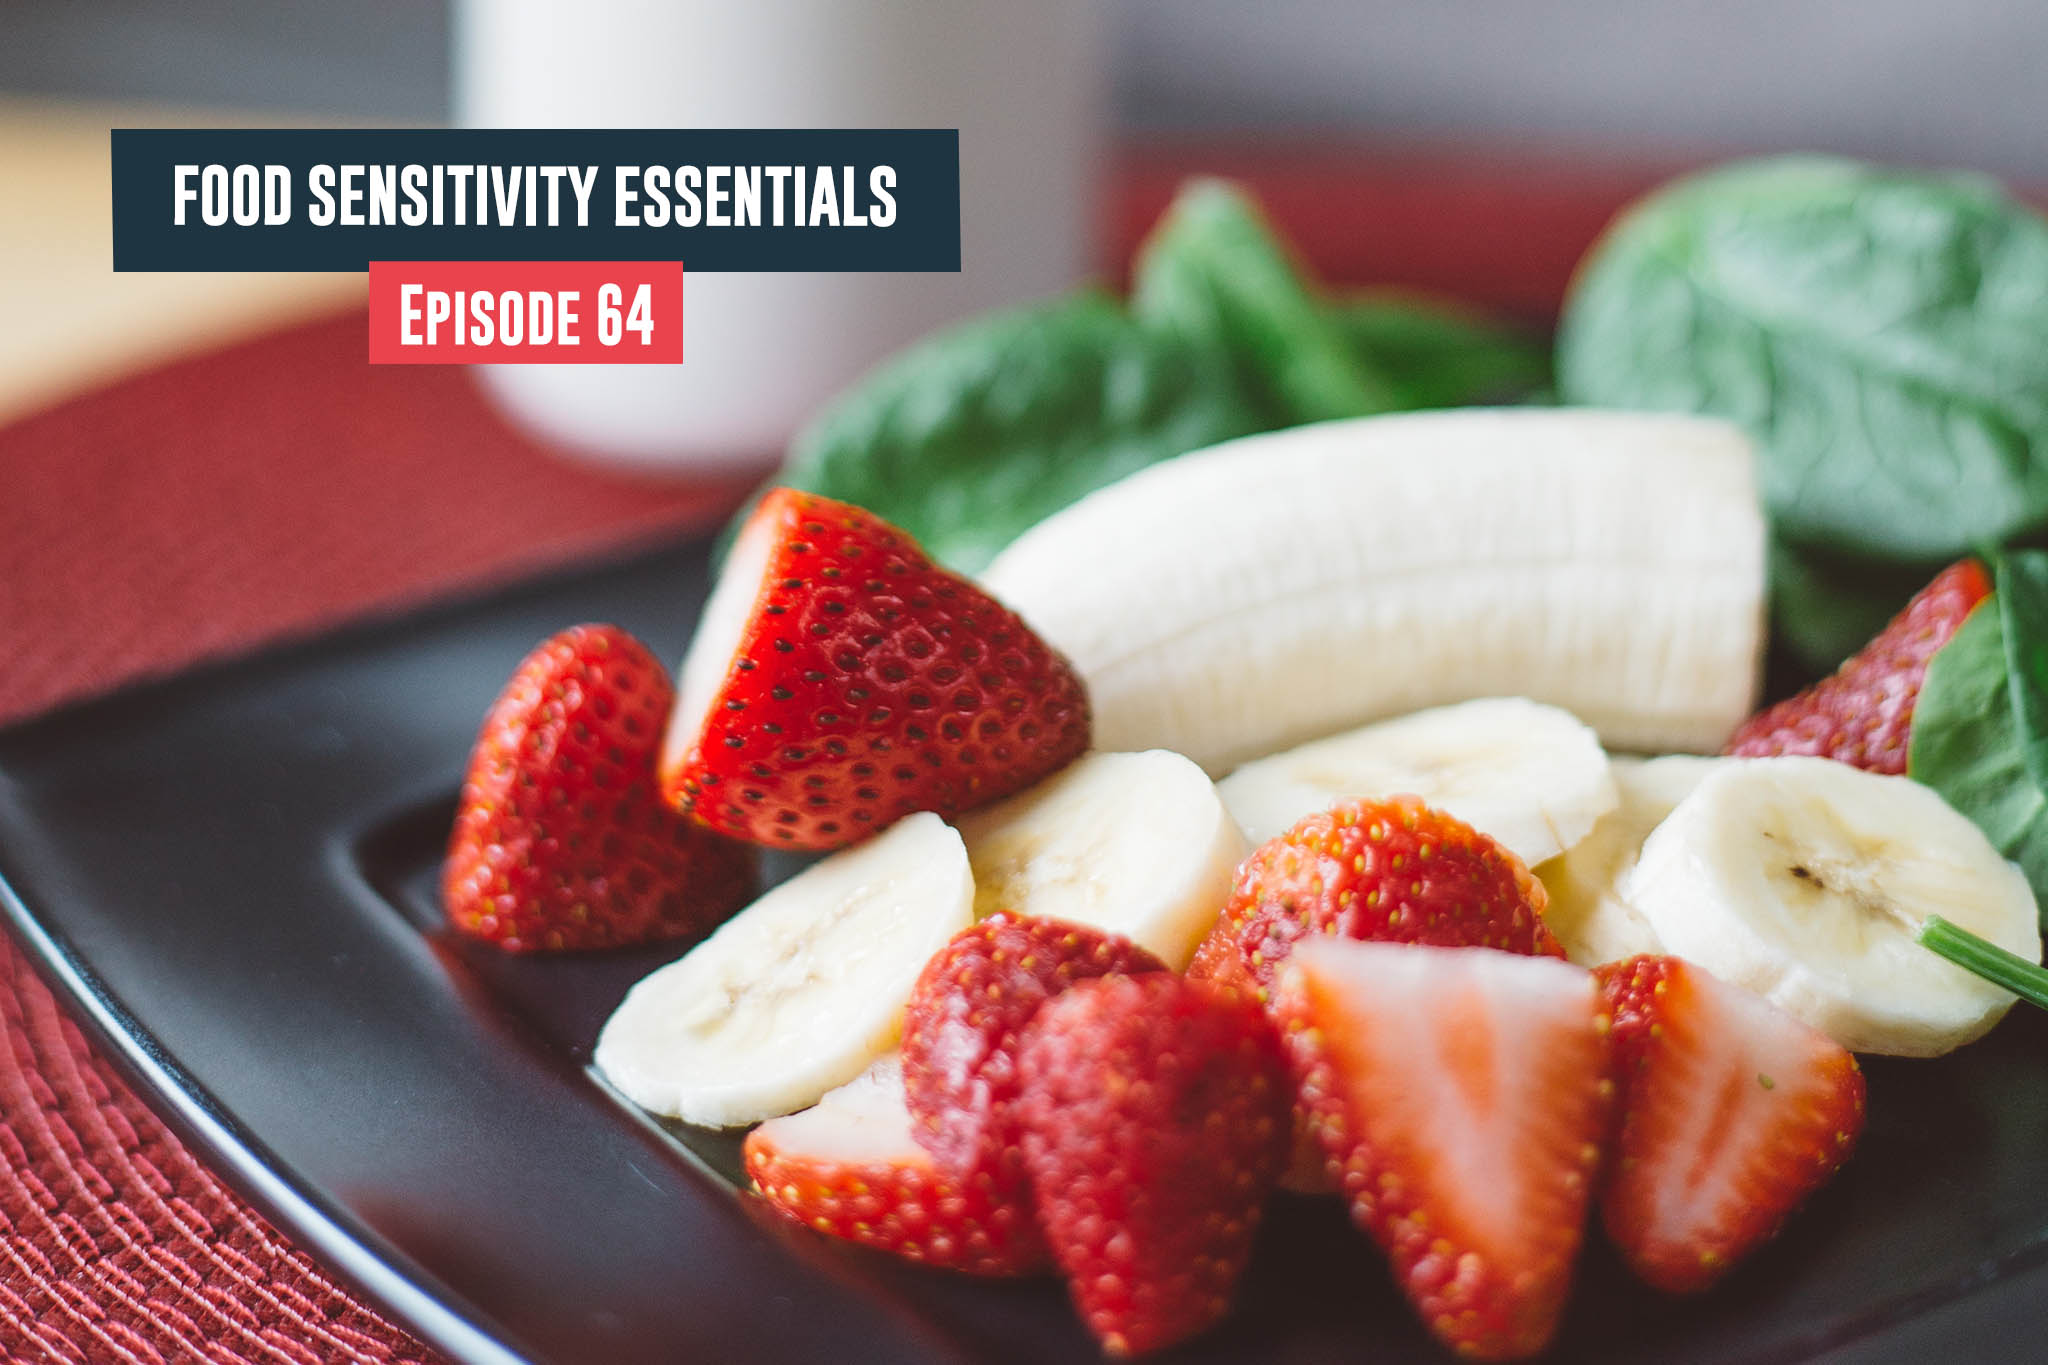 Food Sensitivity Essentials